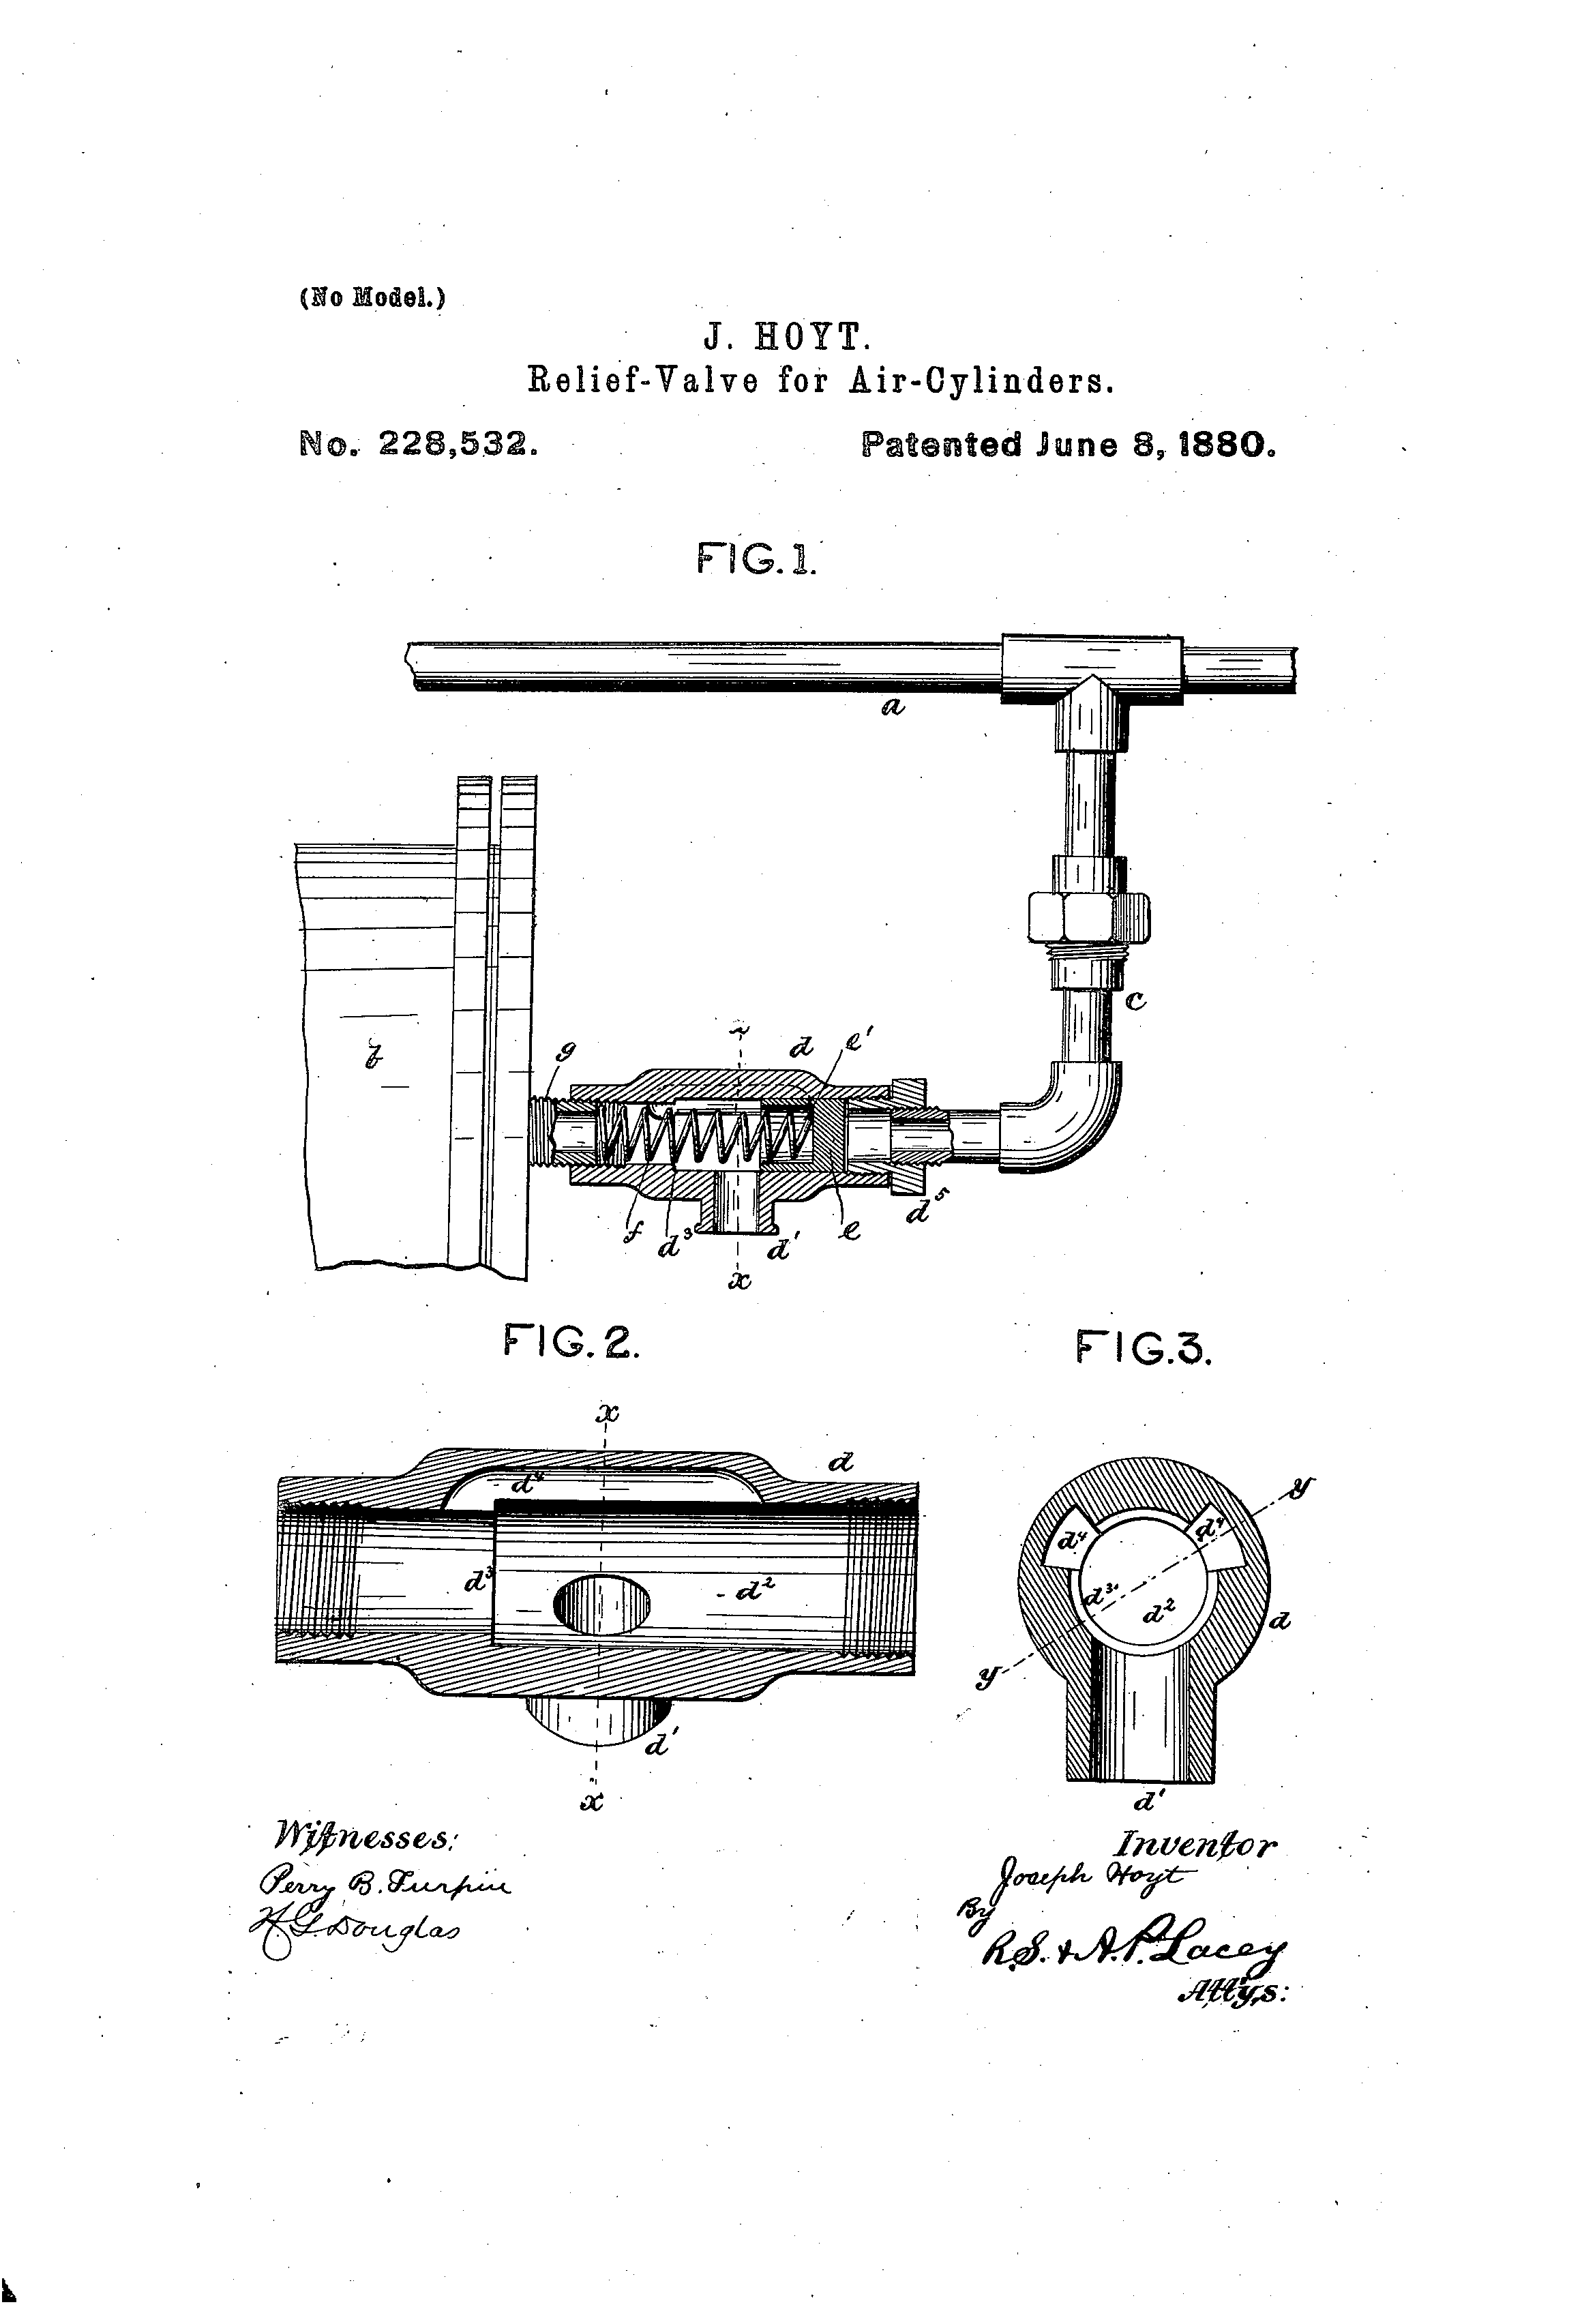 Patente Us228532 Relief Valve For Air Cylinders Google Patentes Cylinder Schematic Patent Drawing